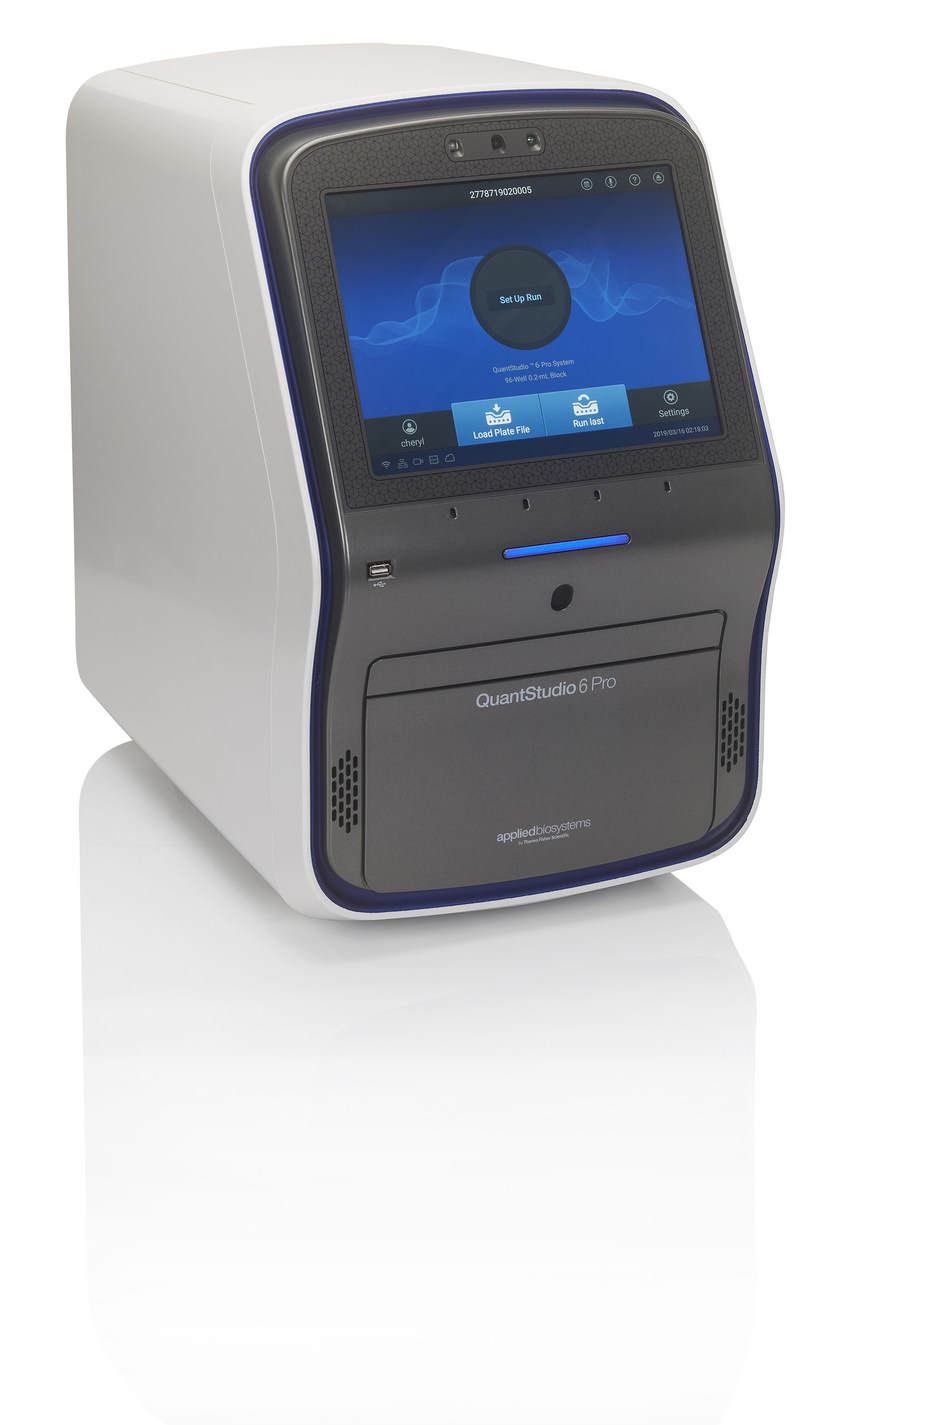 The QuantStudio 6 Pro Real-Time PCR System leverages advanced capabilities, such as facial authentication and voice-activated commands, to maximize efficiency and increase productivity in the laboratory.